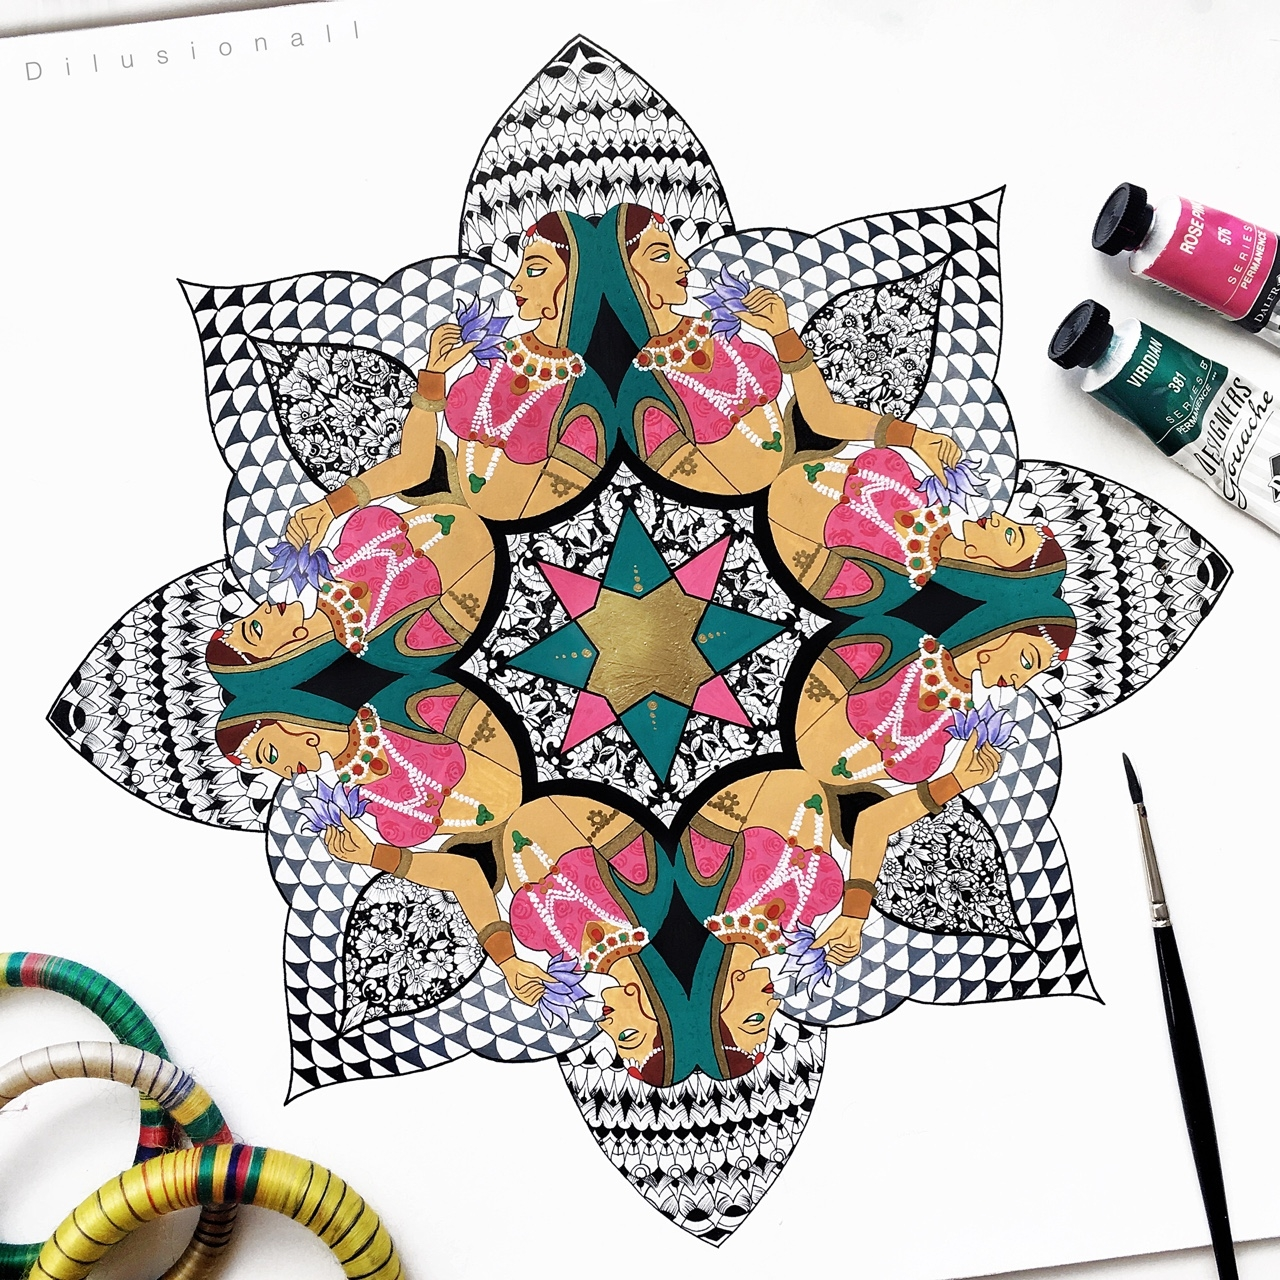 08-Indian-Miniature-Kaleidoscope-Dilrani-Kauris-Symmetry-and-Style-in-Mandala-and-Mehndi-Drawings-www-designstack-co